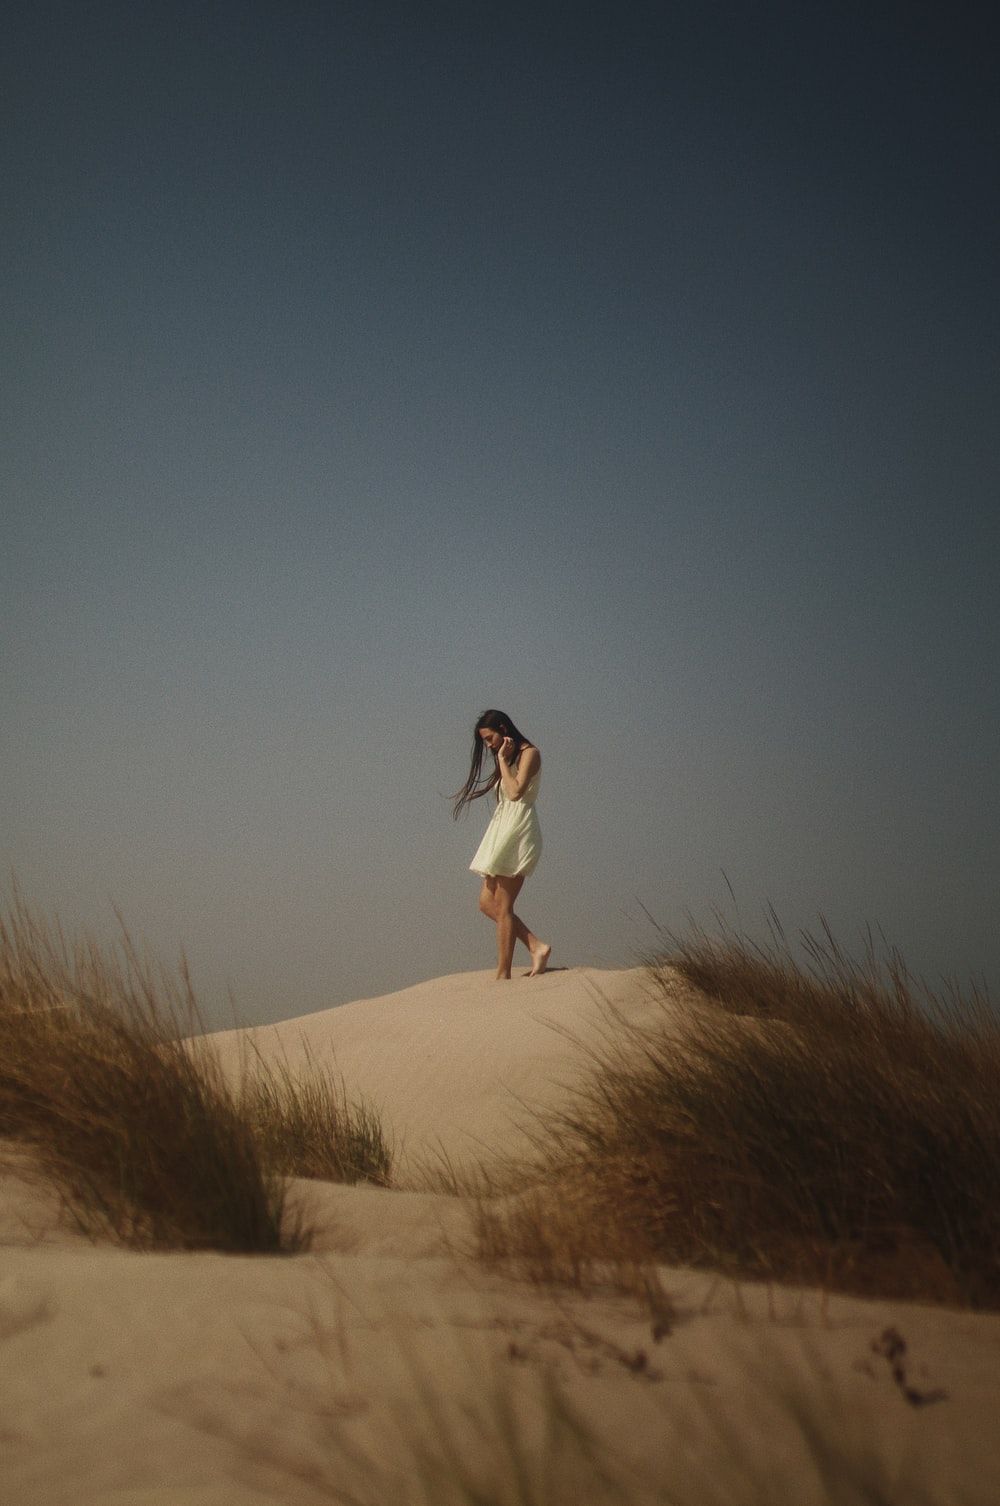 woman in white dress standing on brown field during daytime